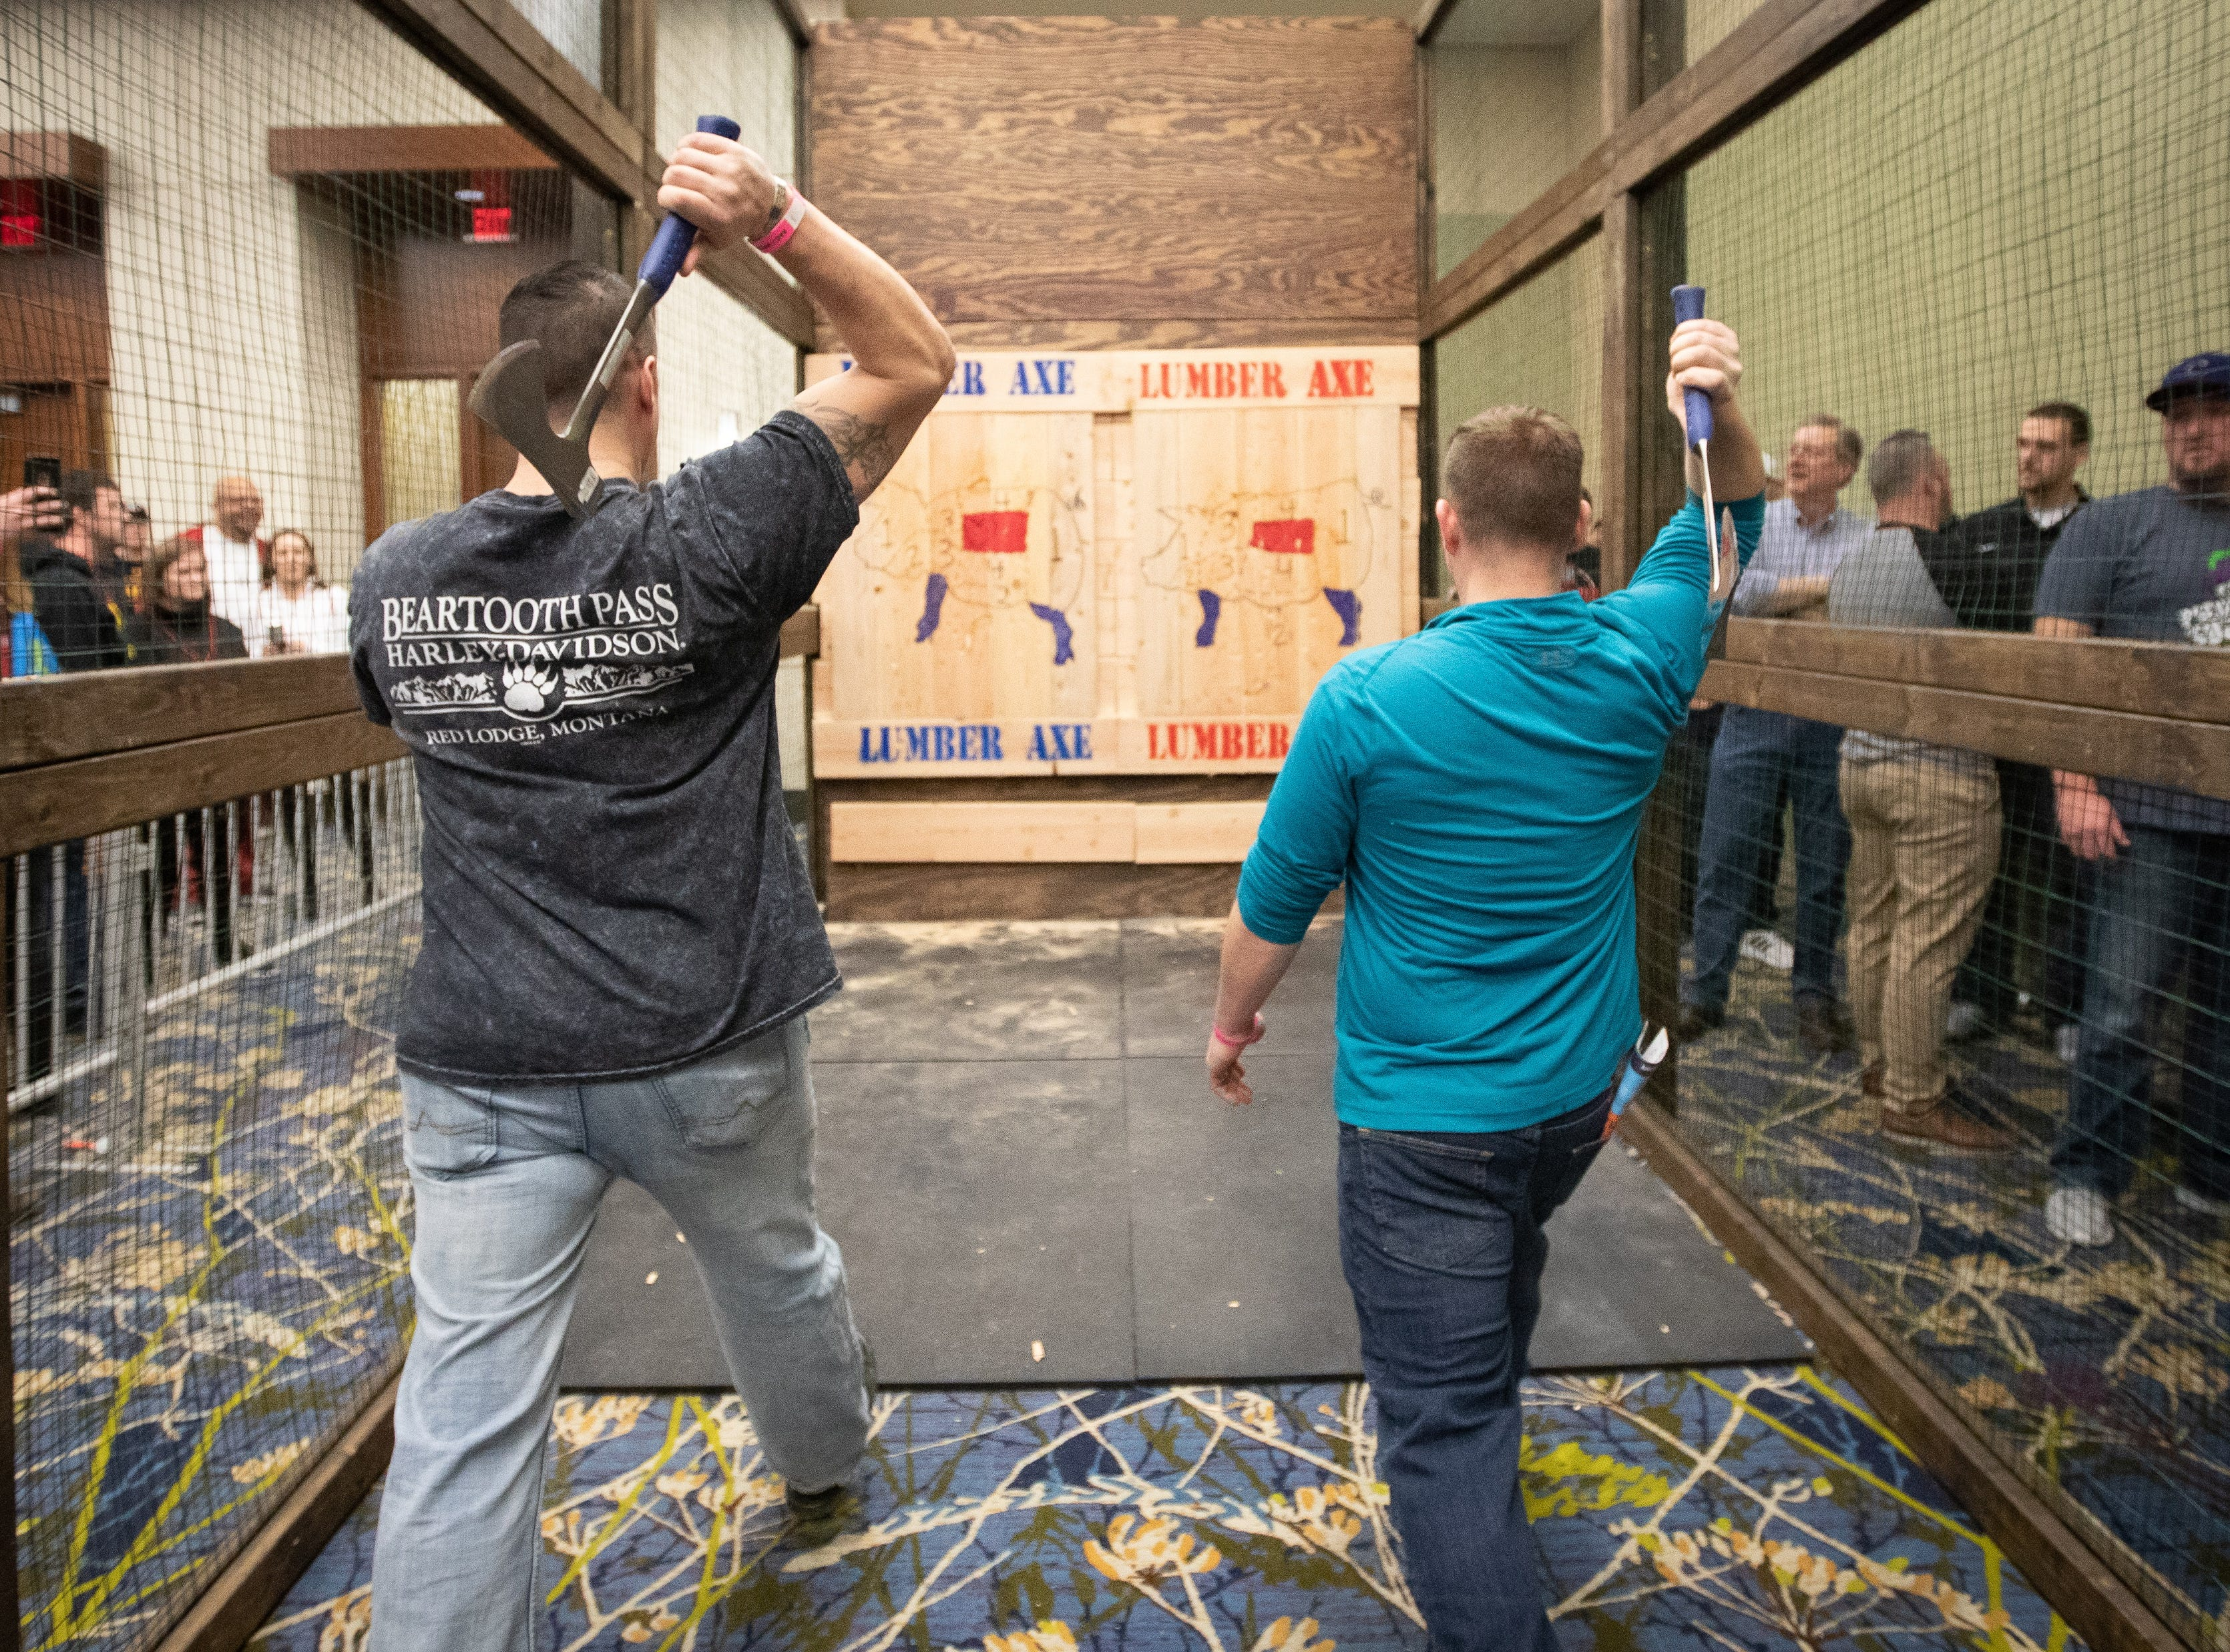 Shawn Parks and Jason Stoos, of Des Moines, throw axe during the Bacon Fest at Hy-Vee Hall on Feb. 16, 2019 in Des Moines, Iowa.